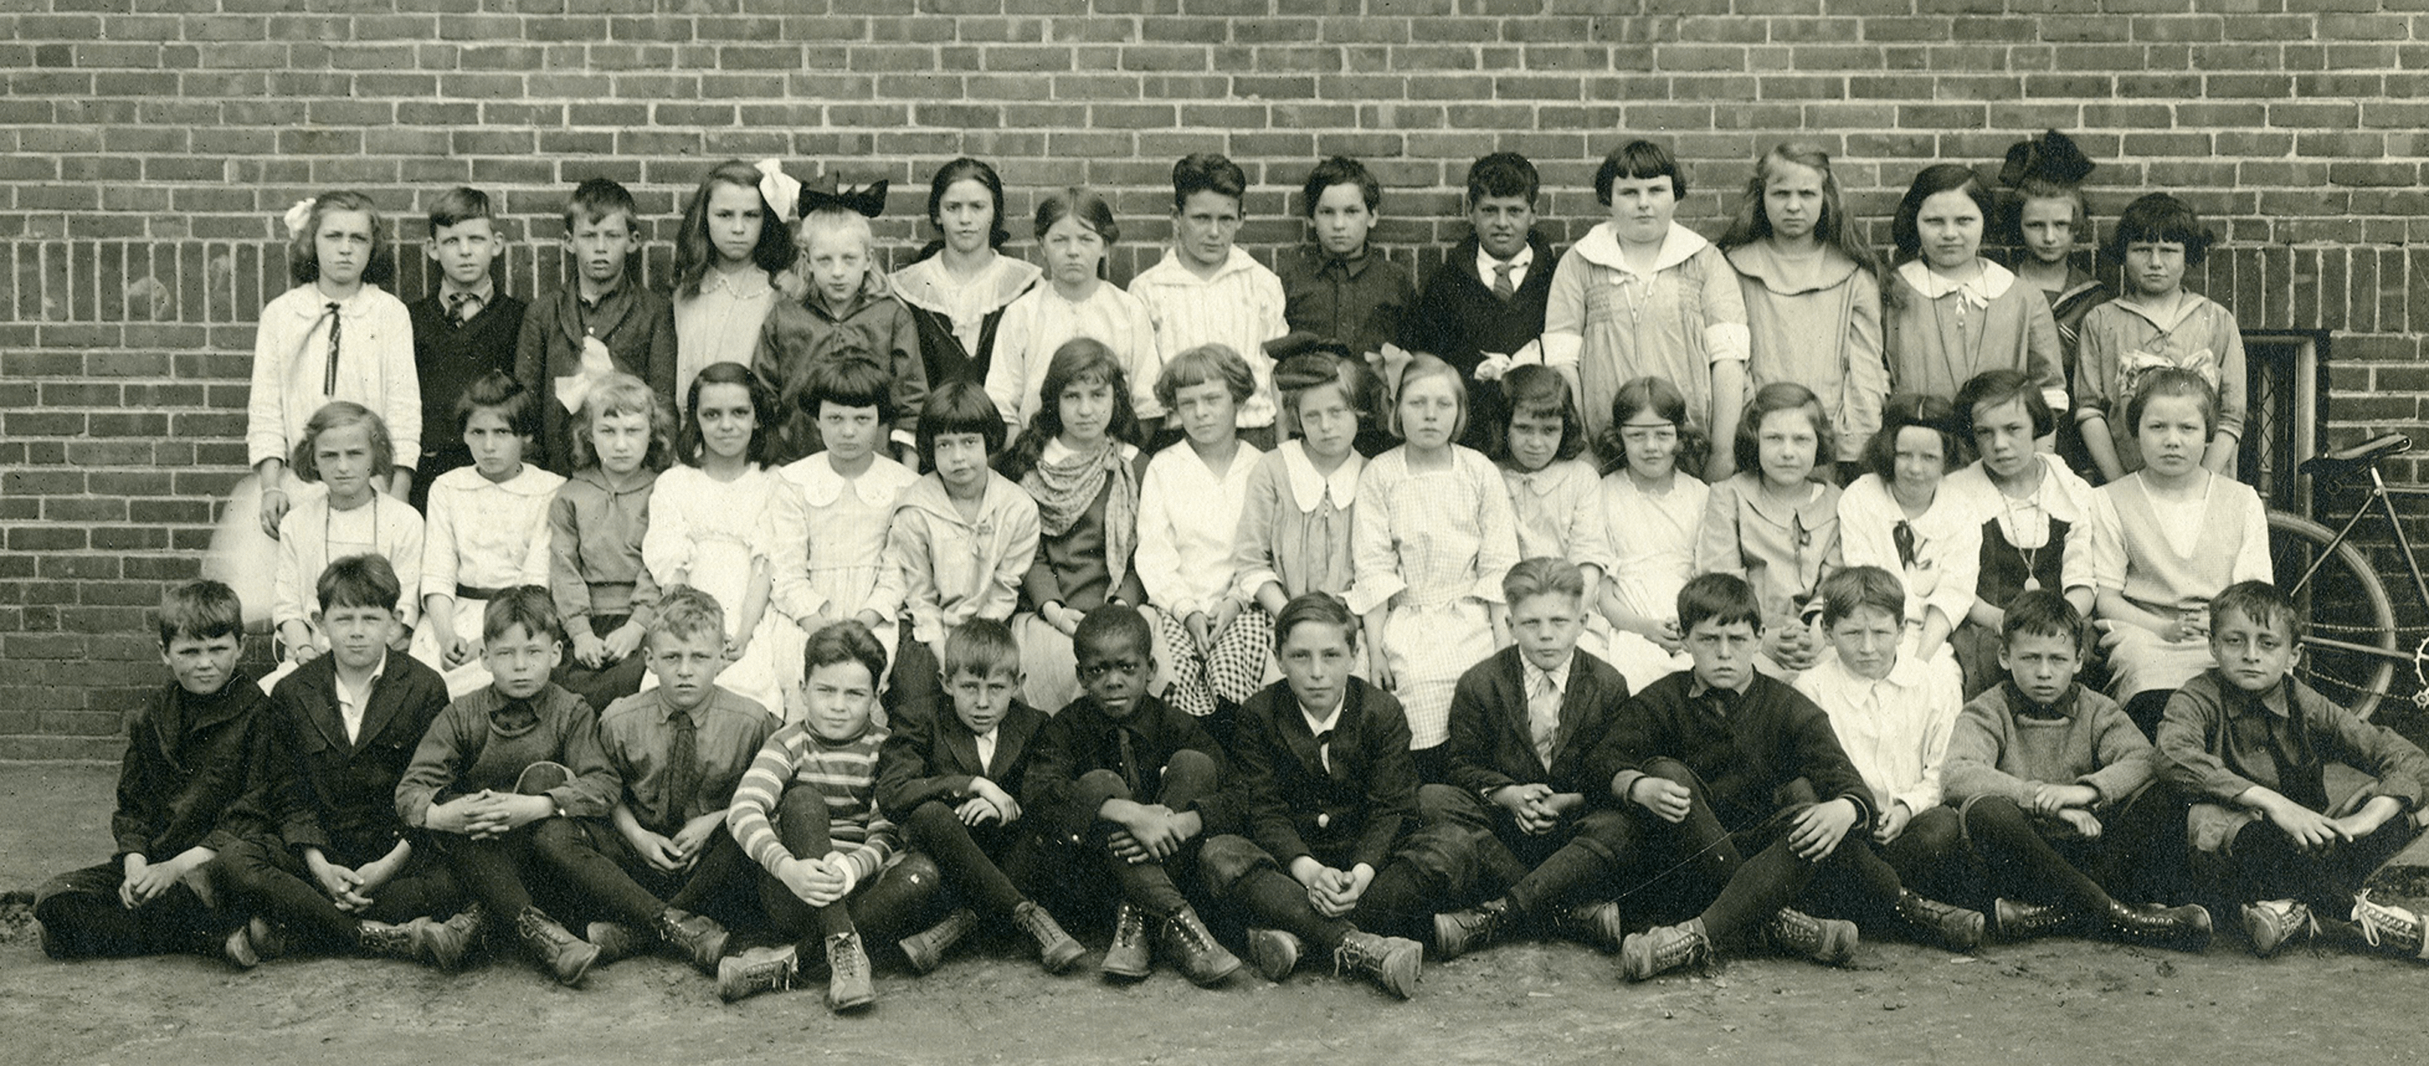 Future class of 1932. Tom is pictured in the first row, seventh from the left.